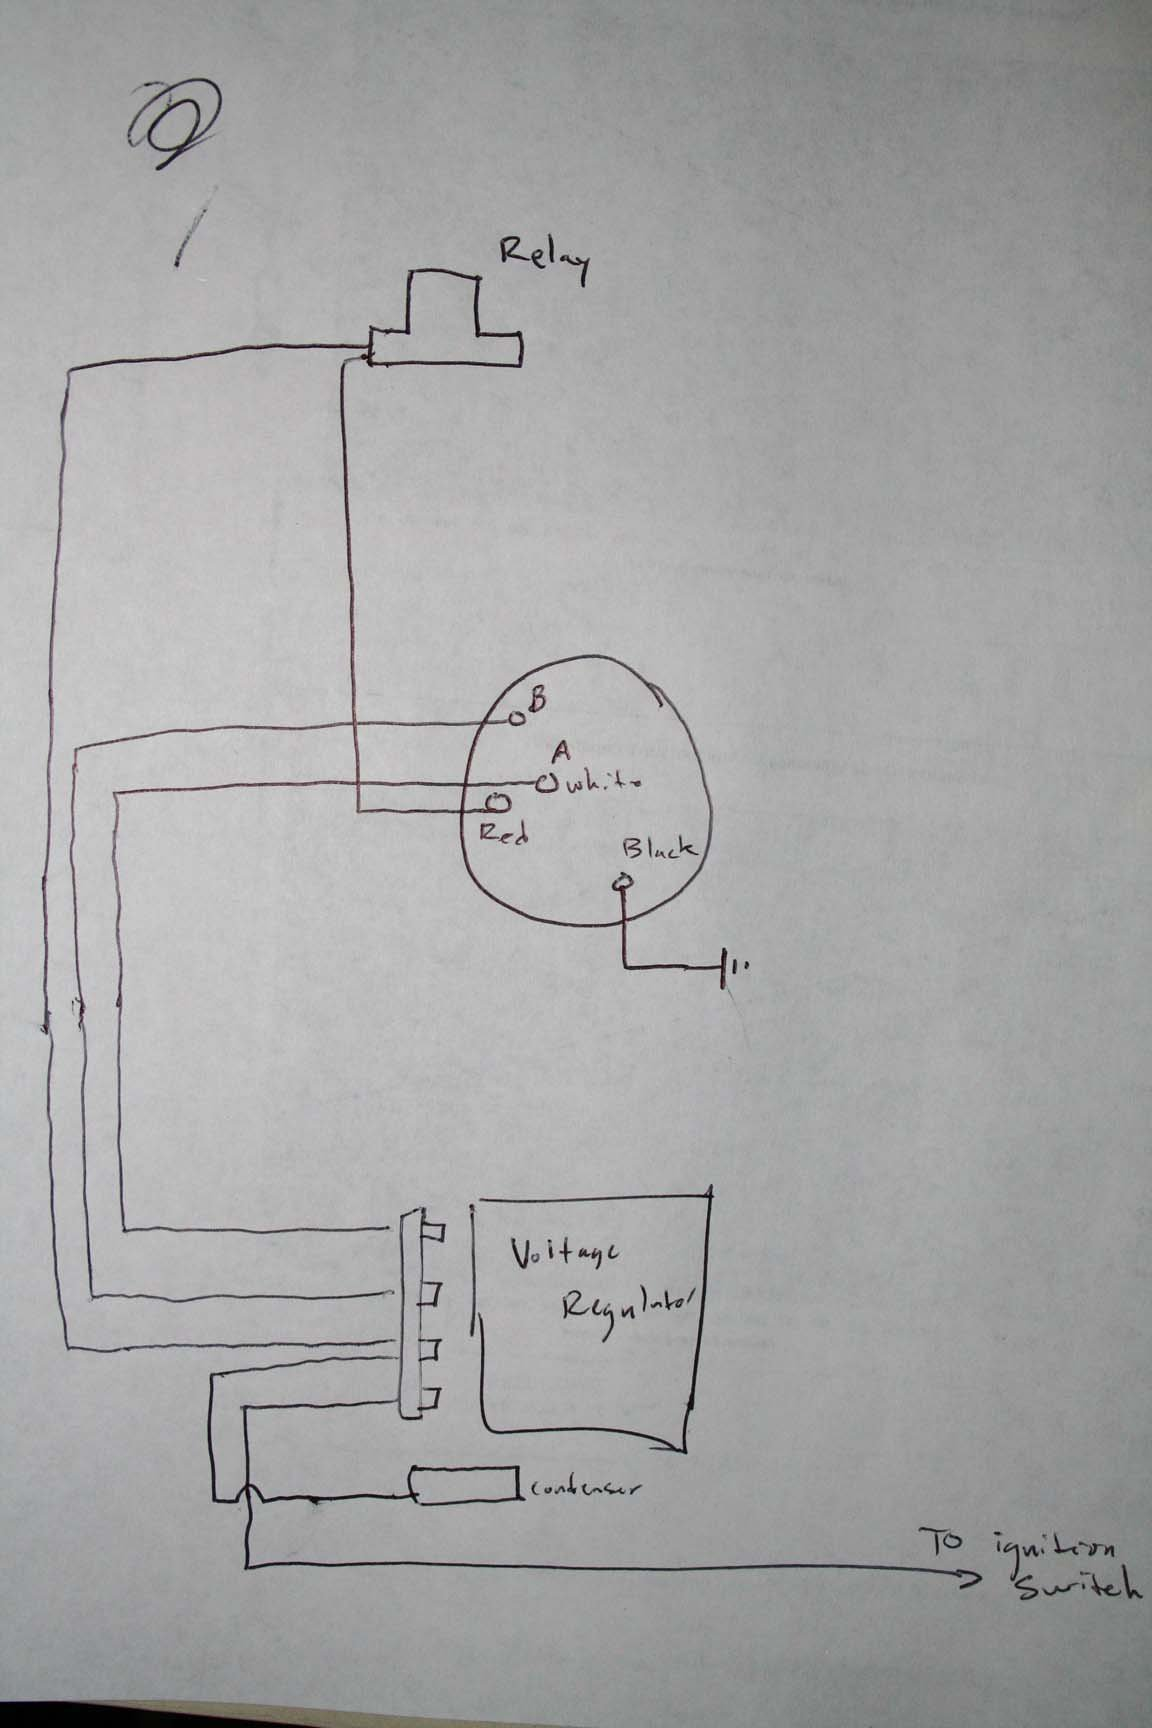 voltage regulator alt wiring on coupe have a wire i m not sure click image for larger version charging system diagram jpg views 5794 size